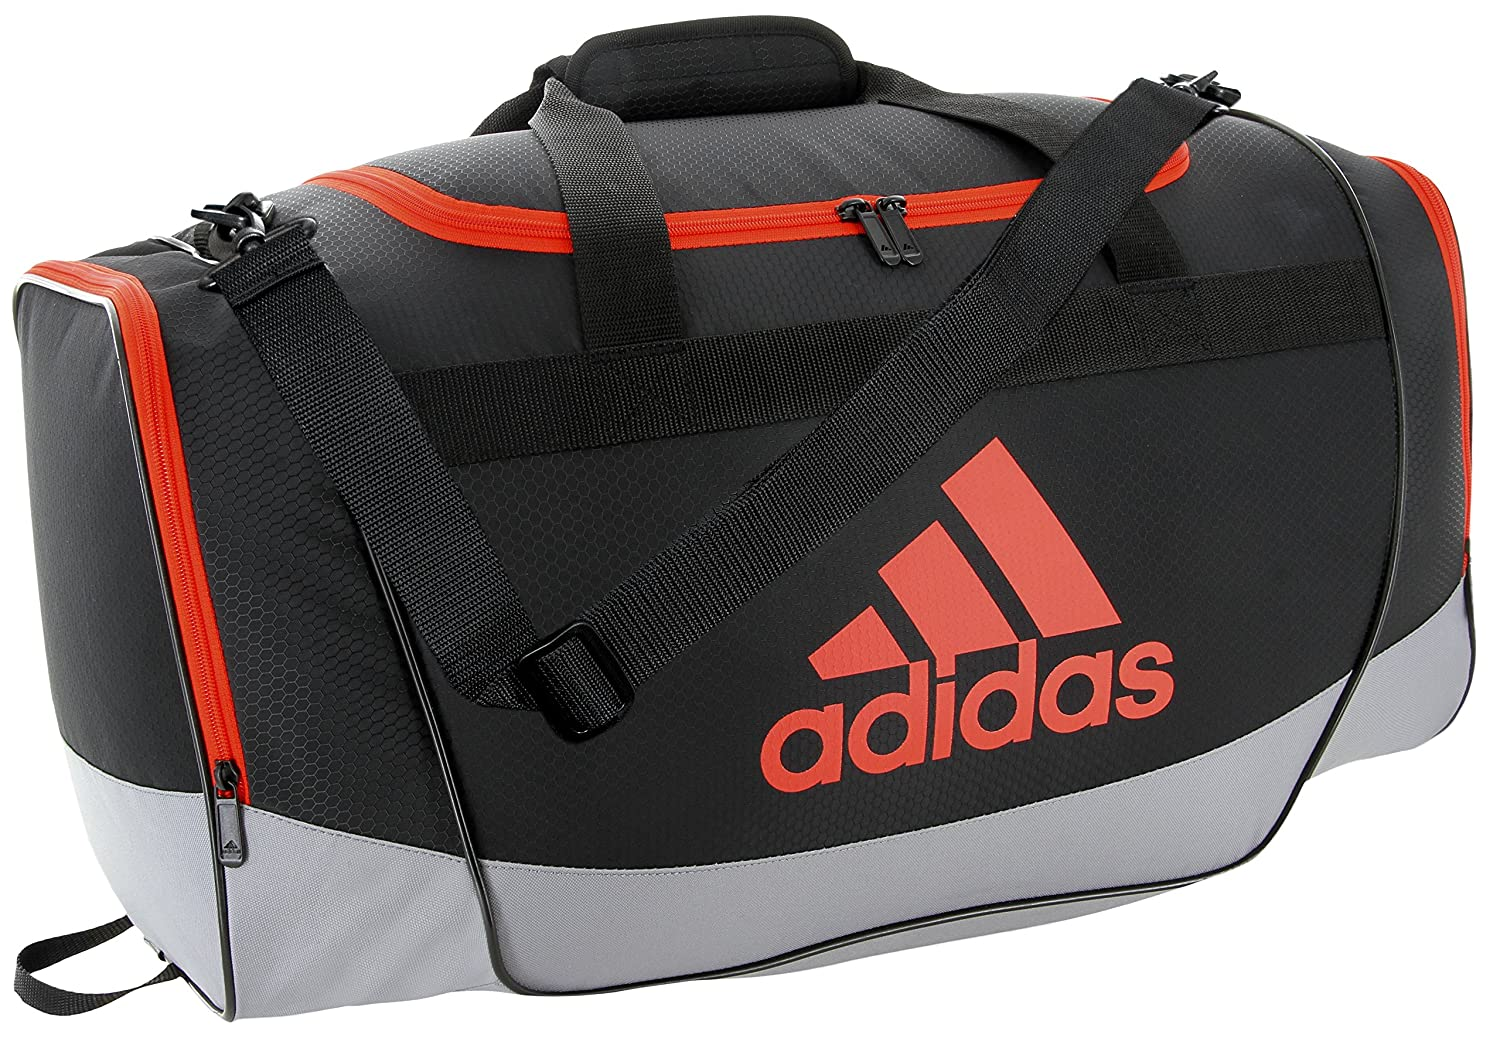 ee2287053f Black White Bold Blue. Quantity  Description. adidas Defender II Duffel Bag